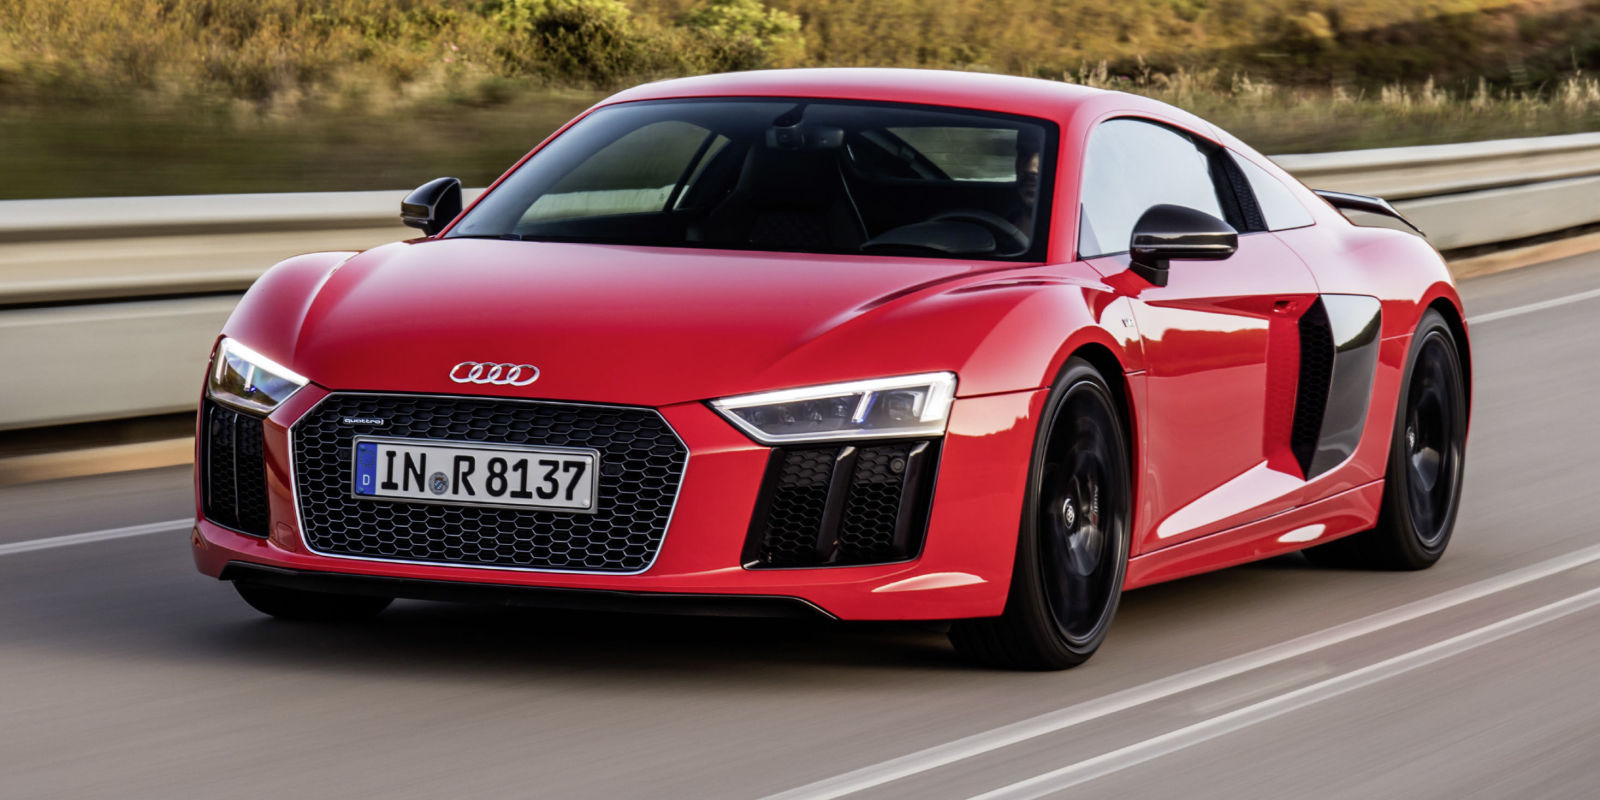 2016 Audi R8 V10 and V10 Plus: First Drive Review